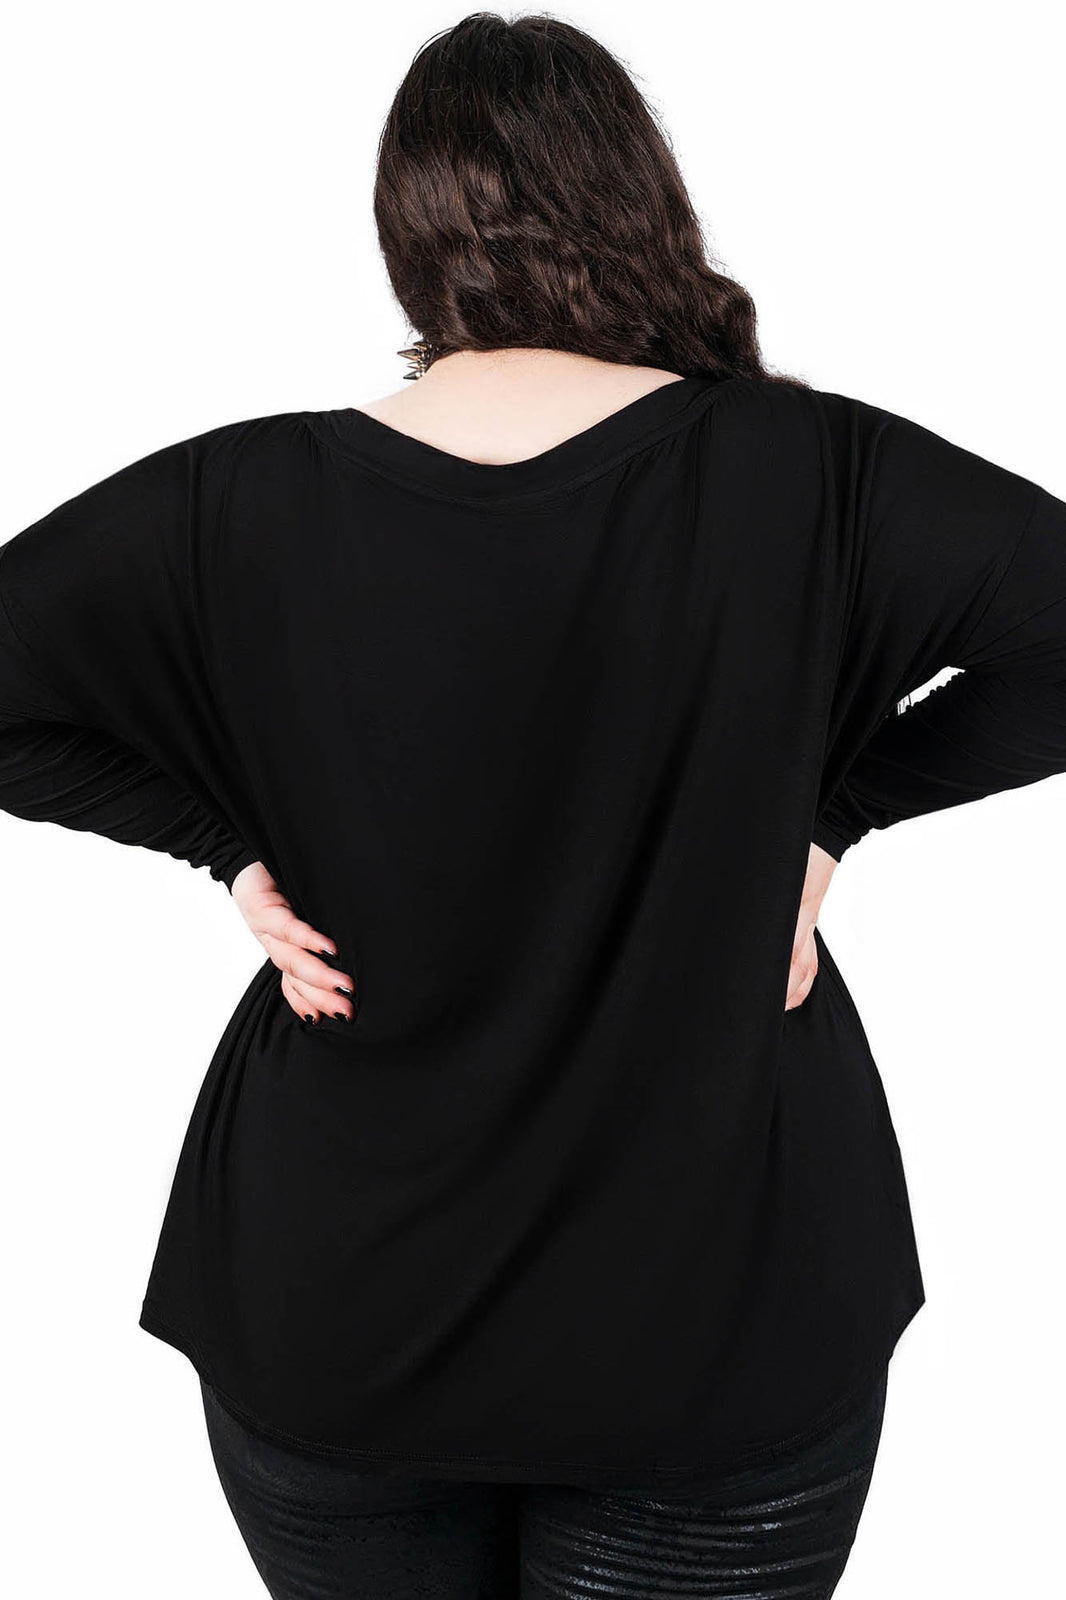 size_shown:4XL